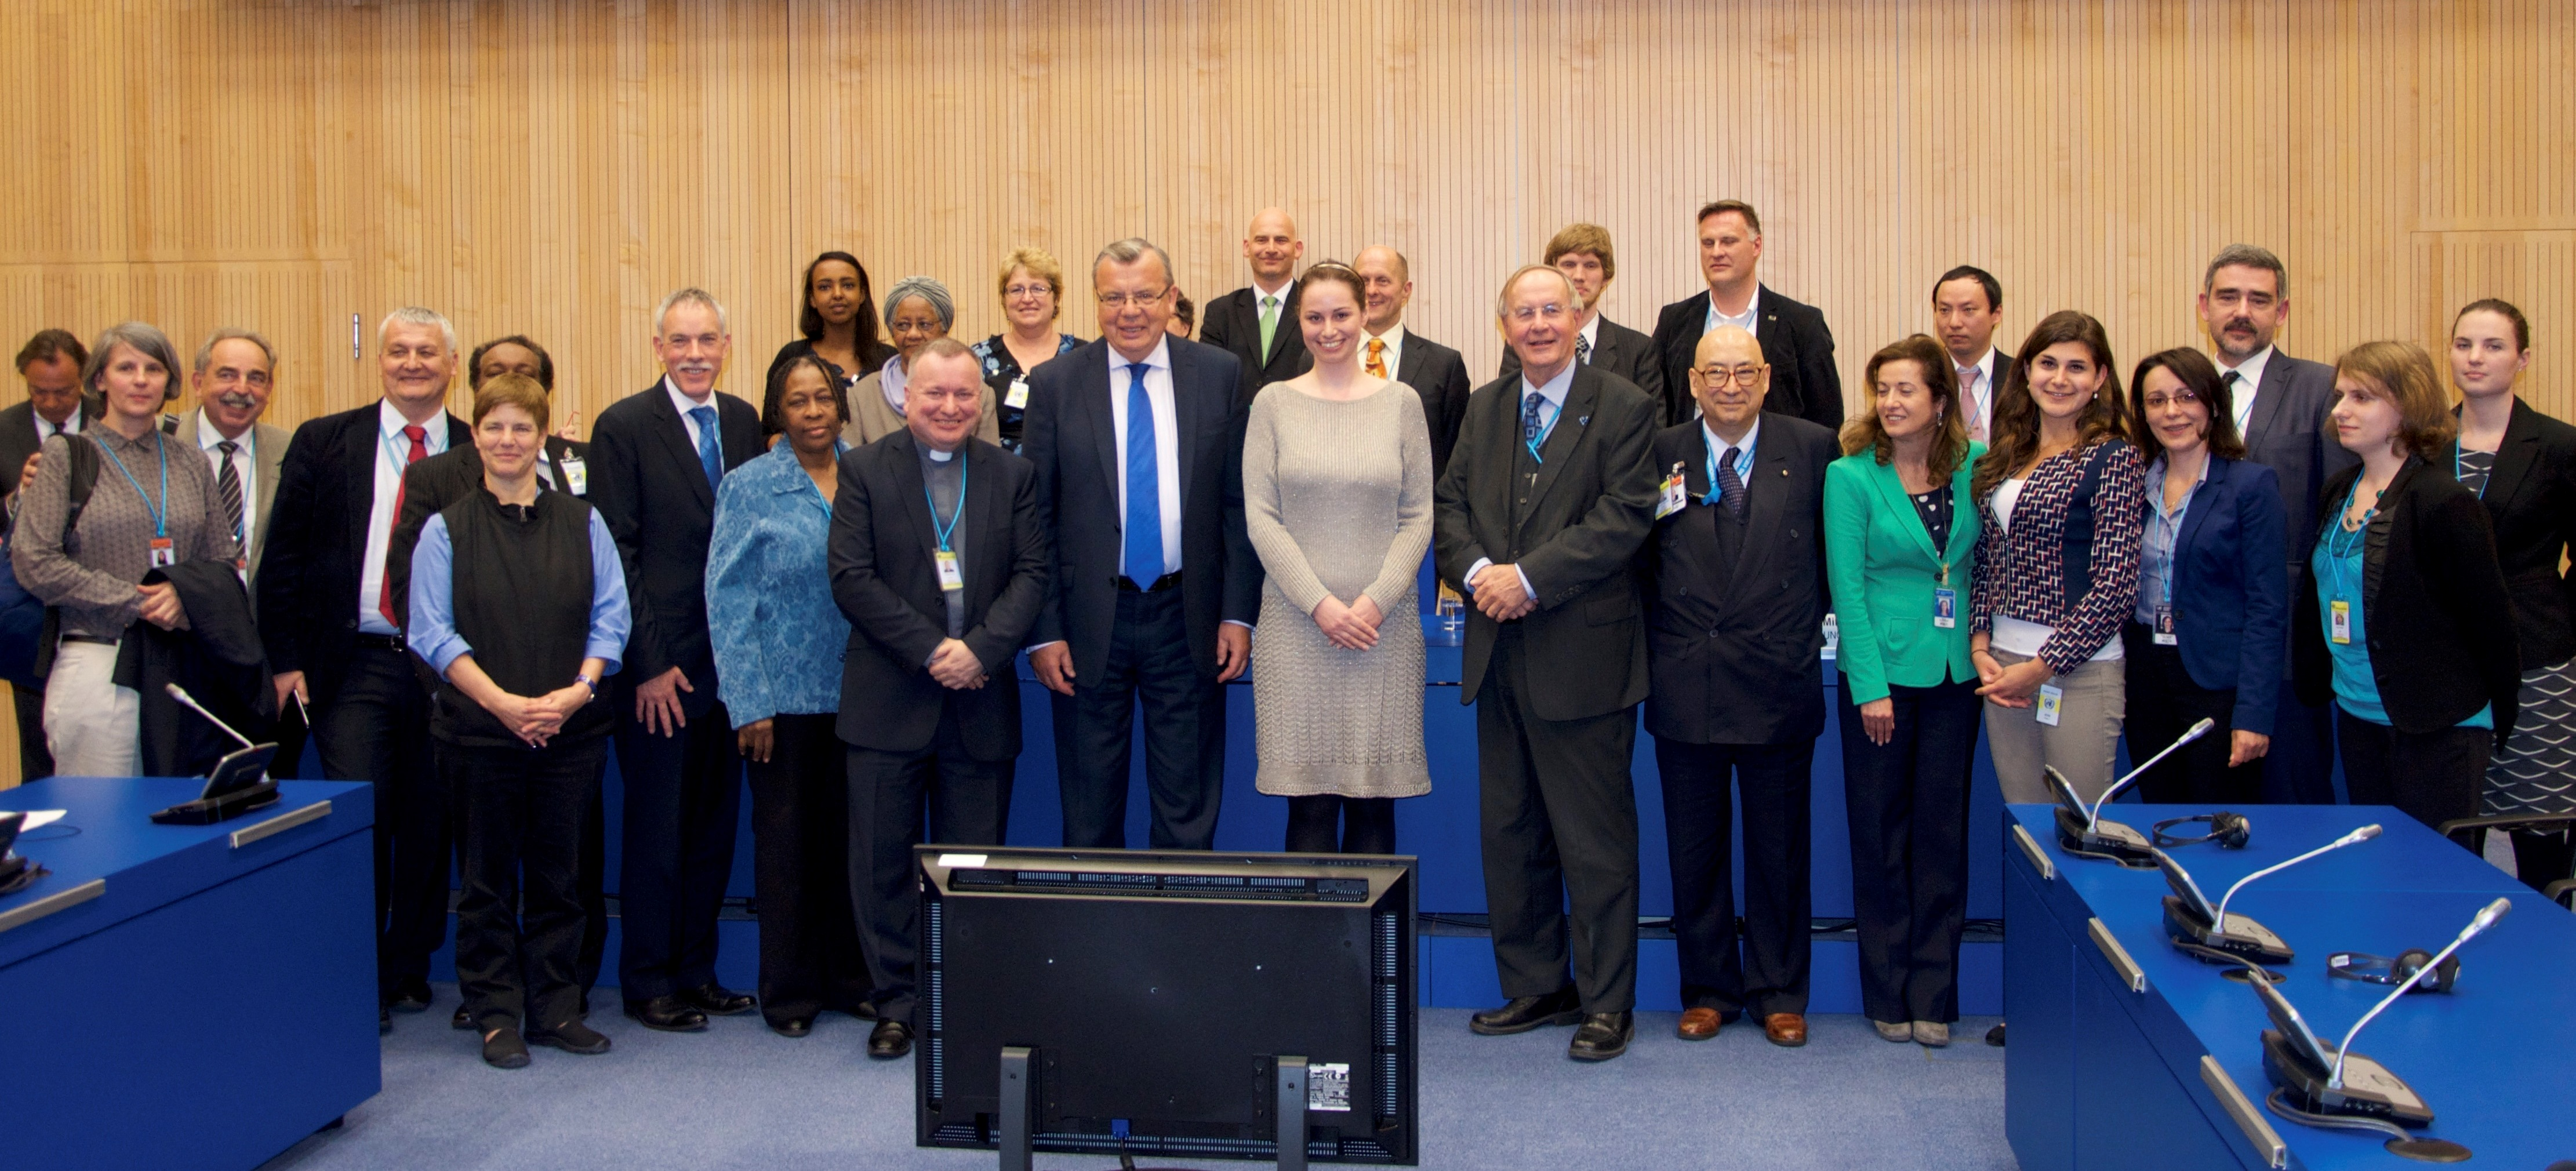 unodc resolution 10 years on from the adoption of the un trafficking in persons protocol (unodc the resolution also encouraged unodc to cooperate.